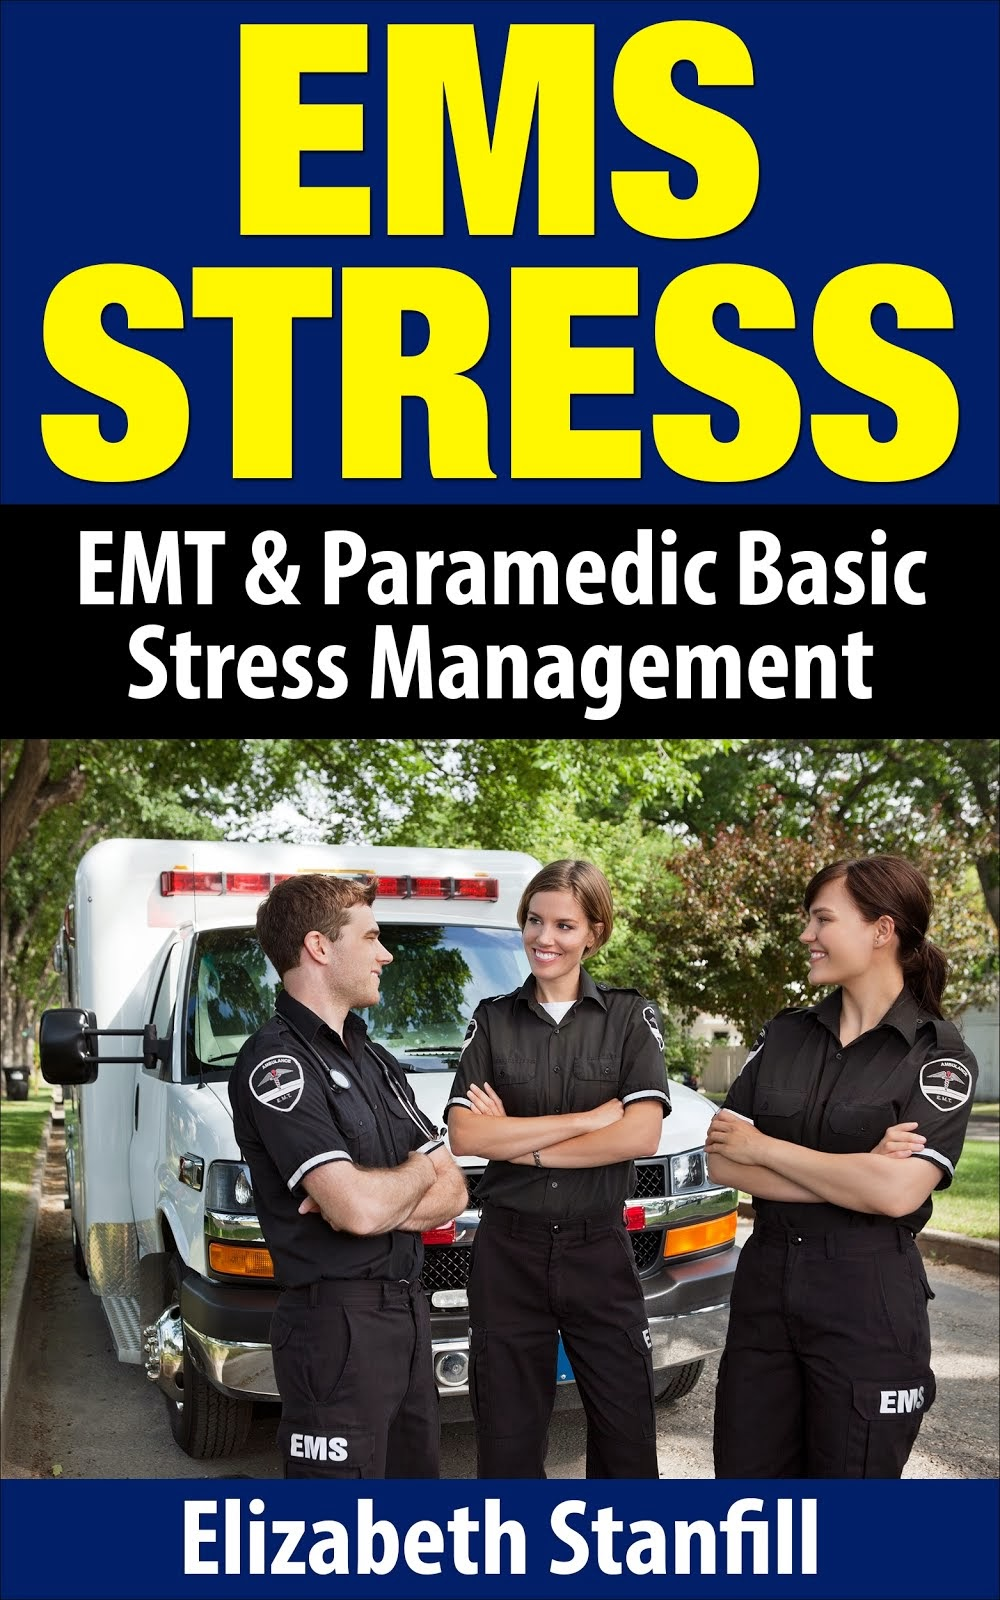 HAVE YOU READ MY EMS STRESS BOOK